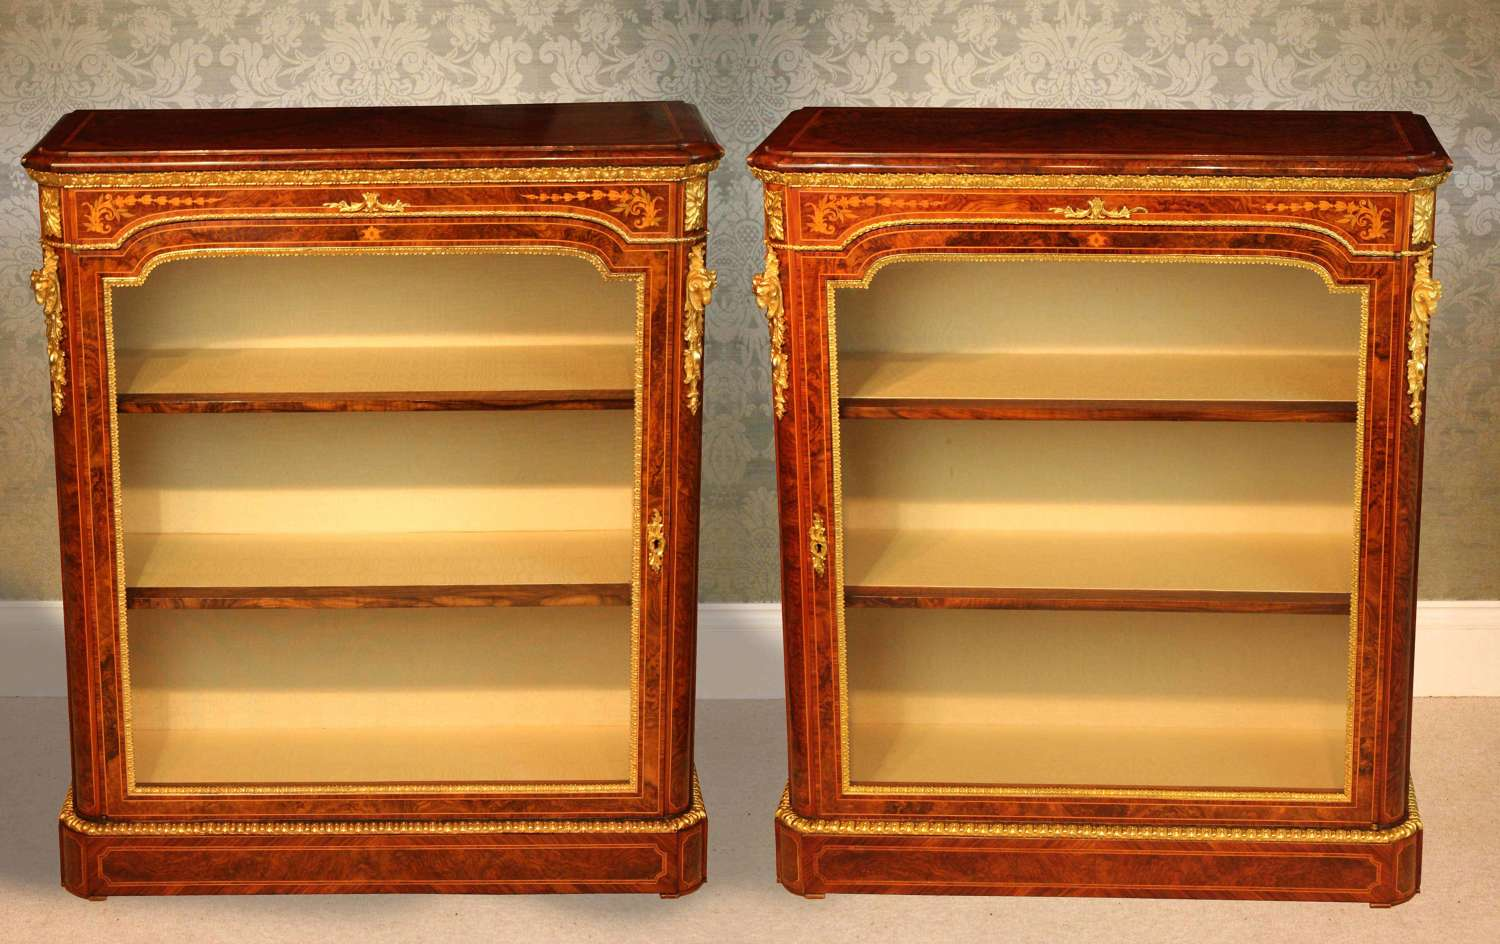 A Pair Victorian Burr Walnut inlaid Pier Cabinets by Wilkinson & Sons.